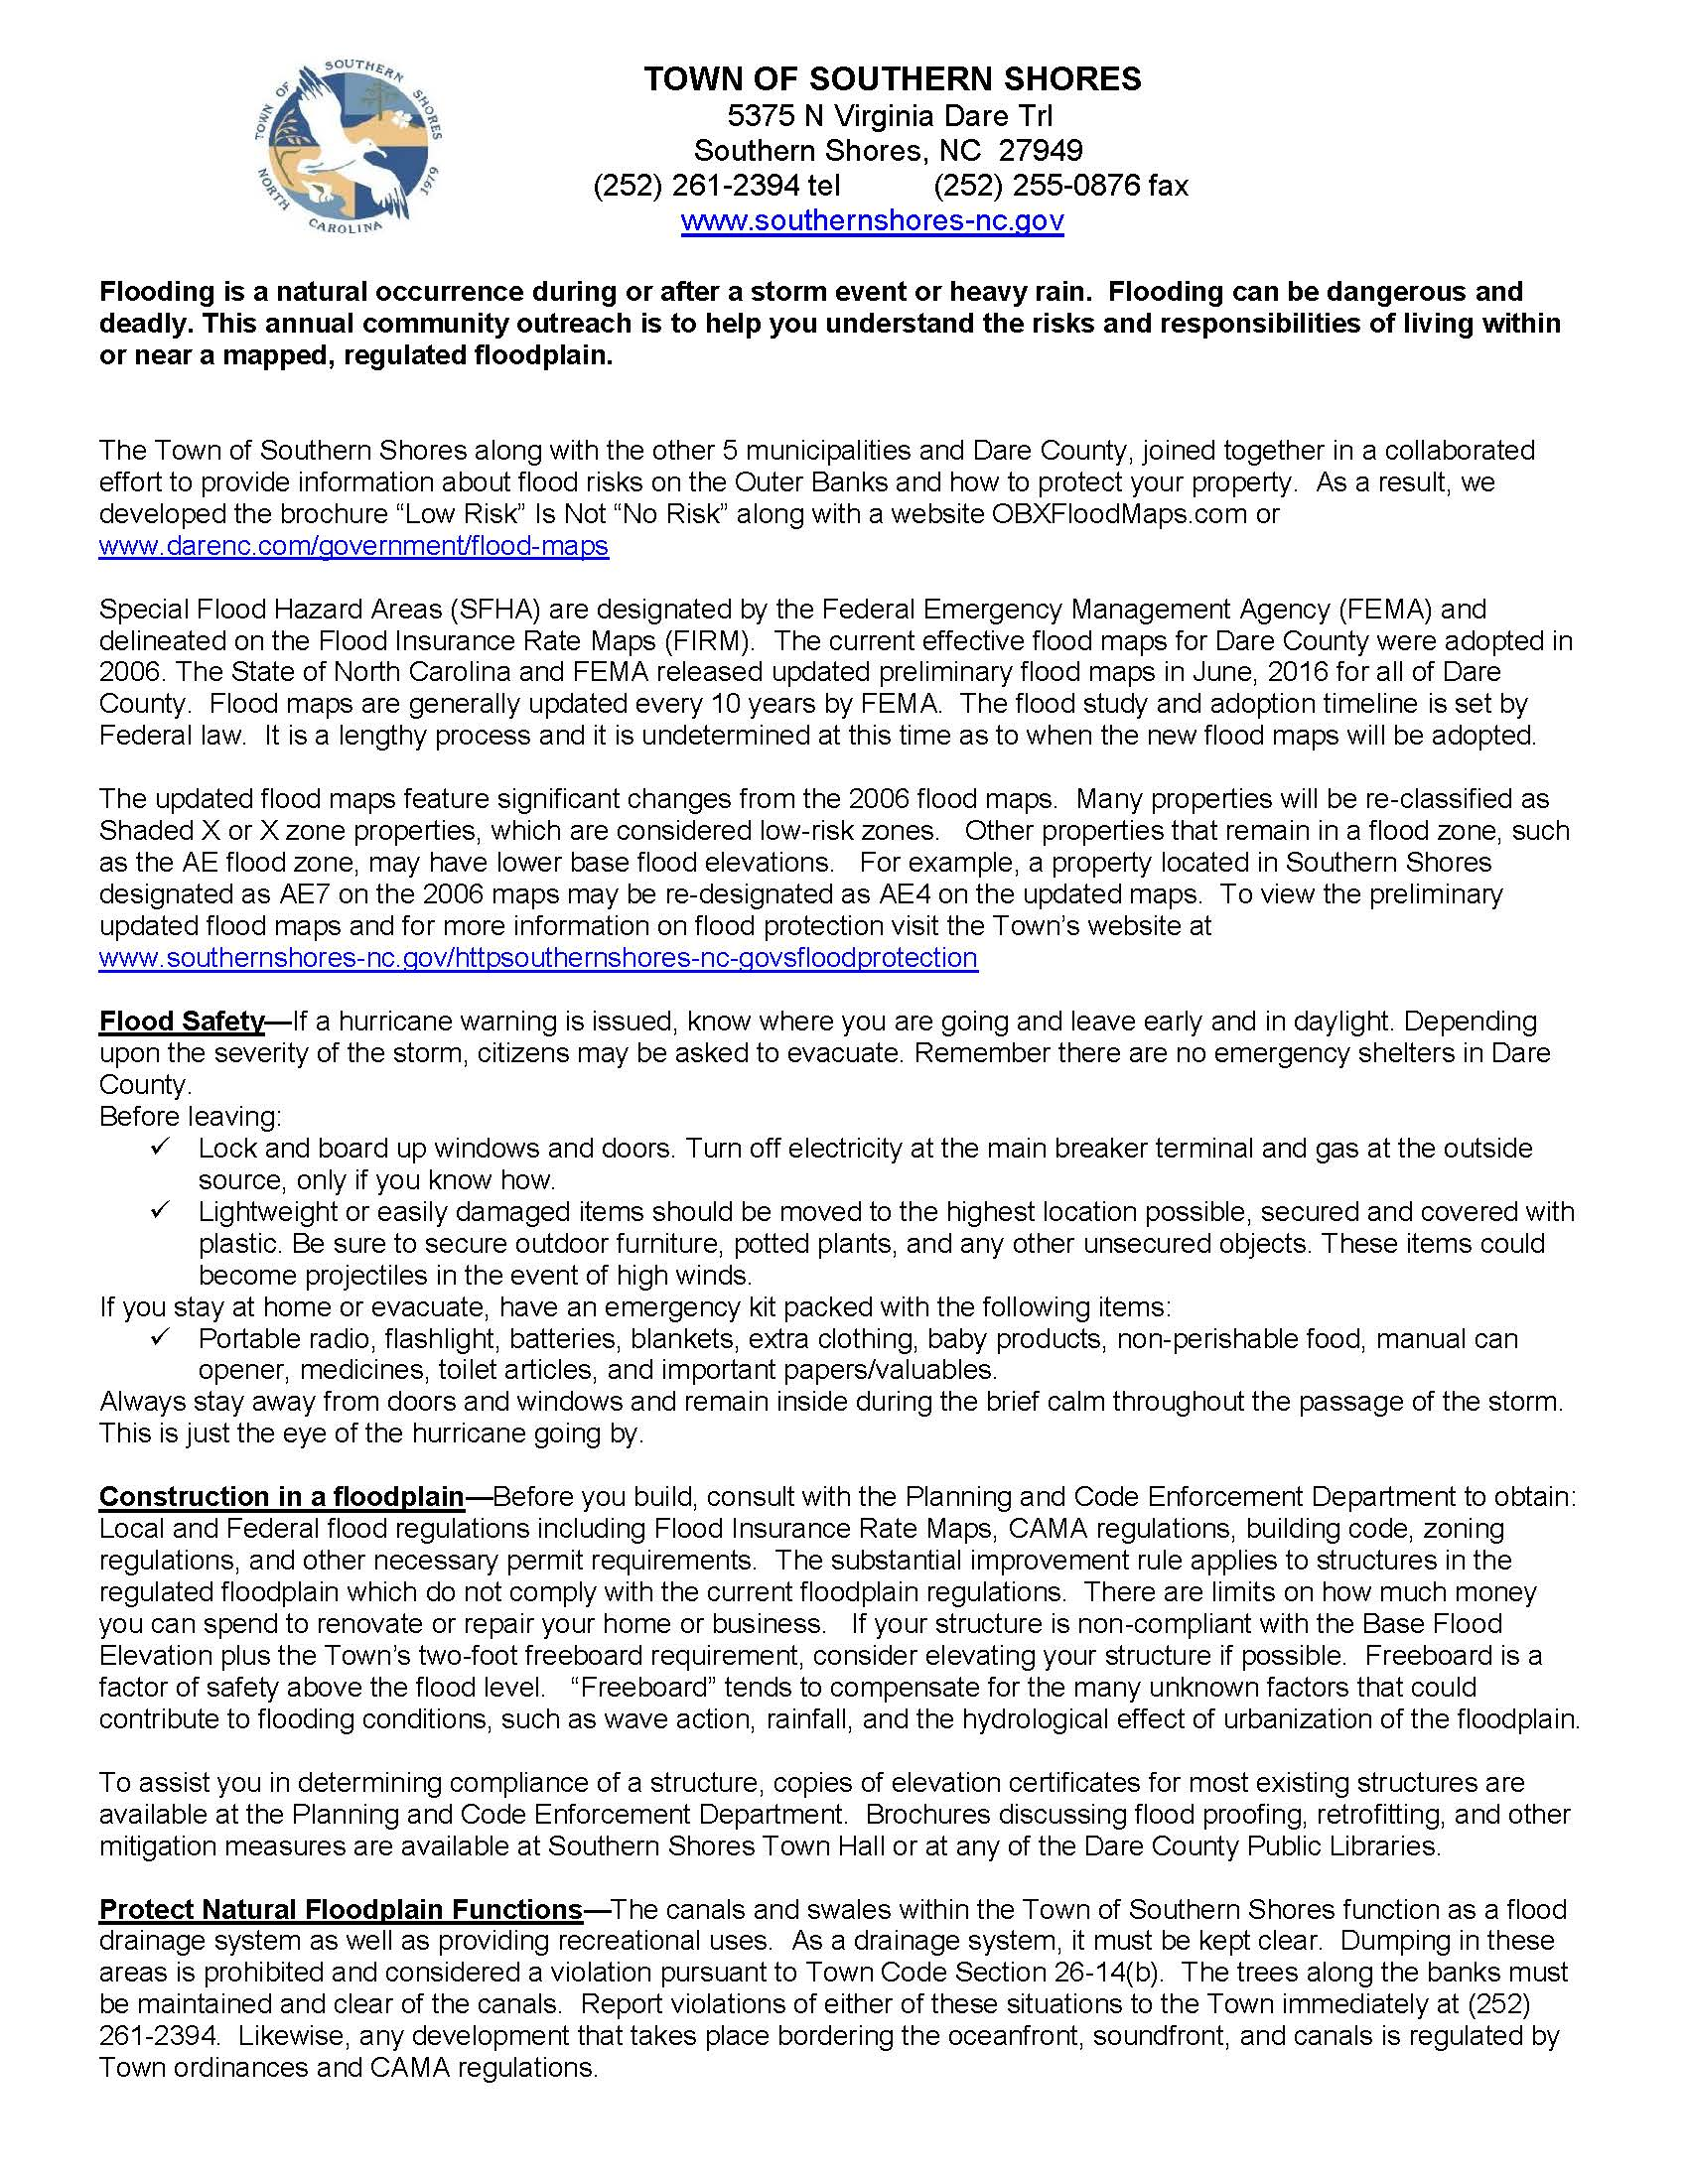 Flood Protection Information Town Of Southern Shores Nc